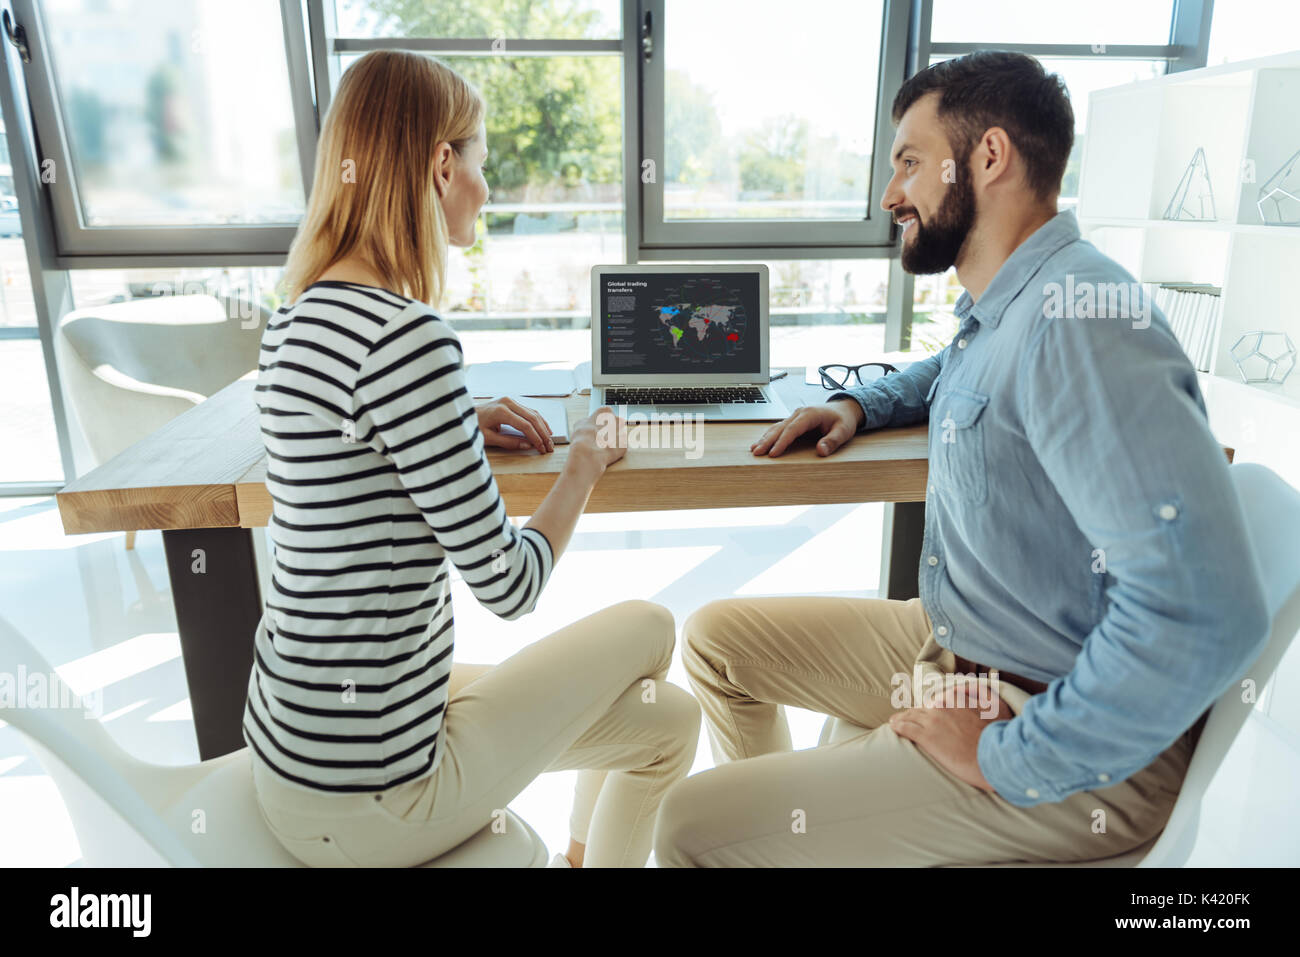 Young office workers discussing their common project - Stock Image